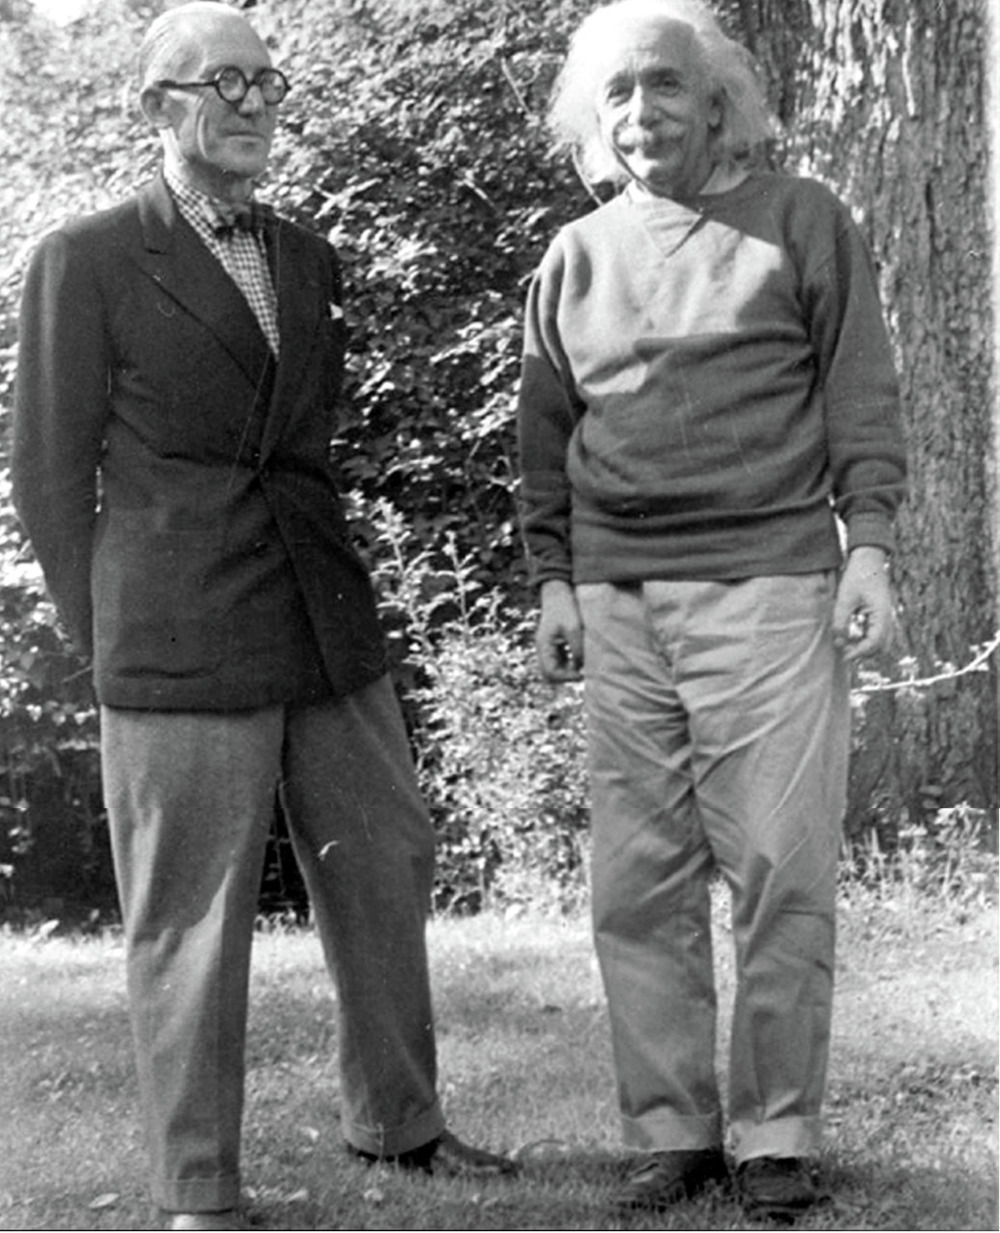 Le Corbusier & Einstein in Princeton, 1946